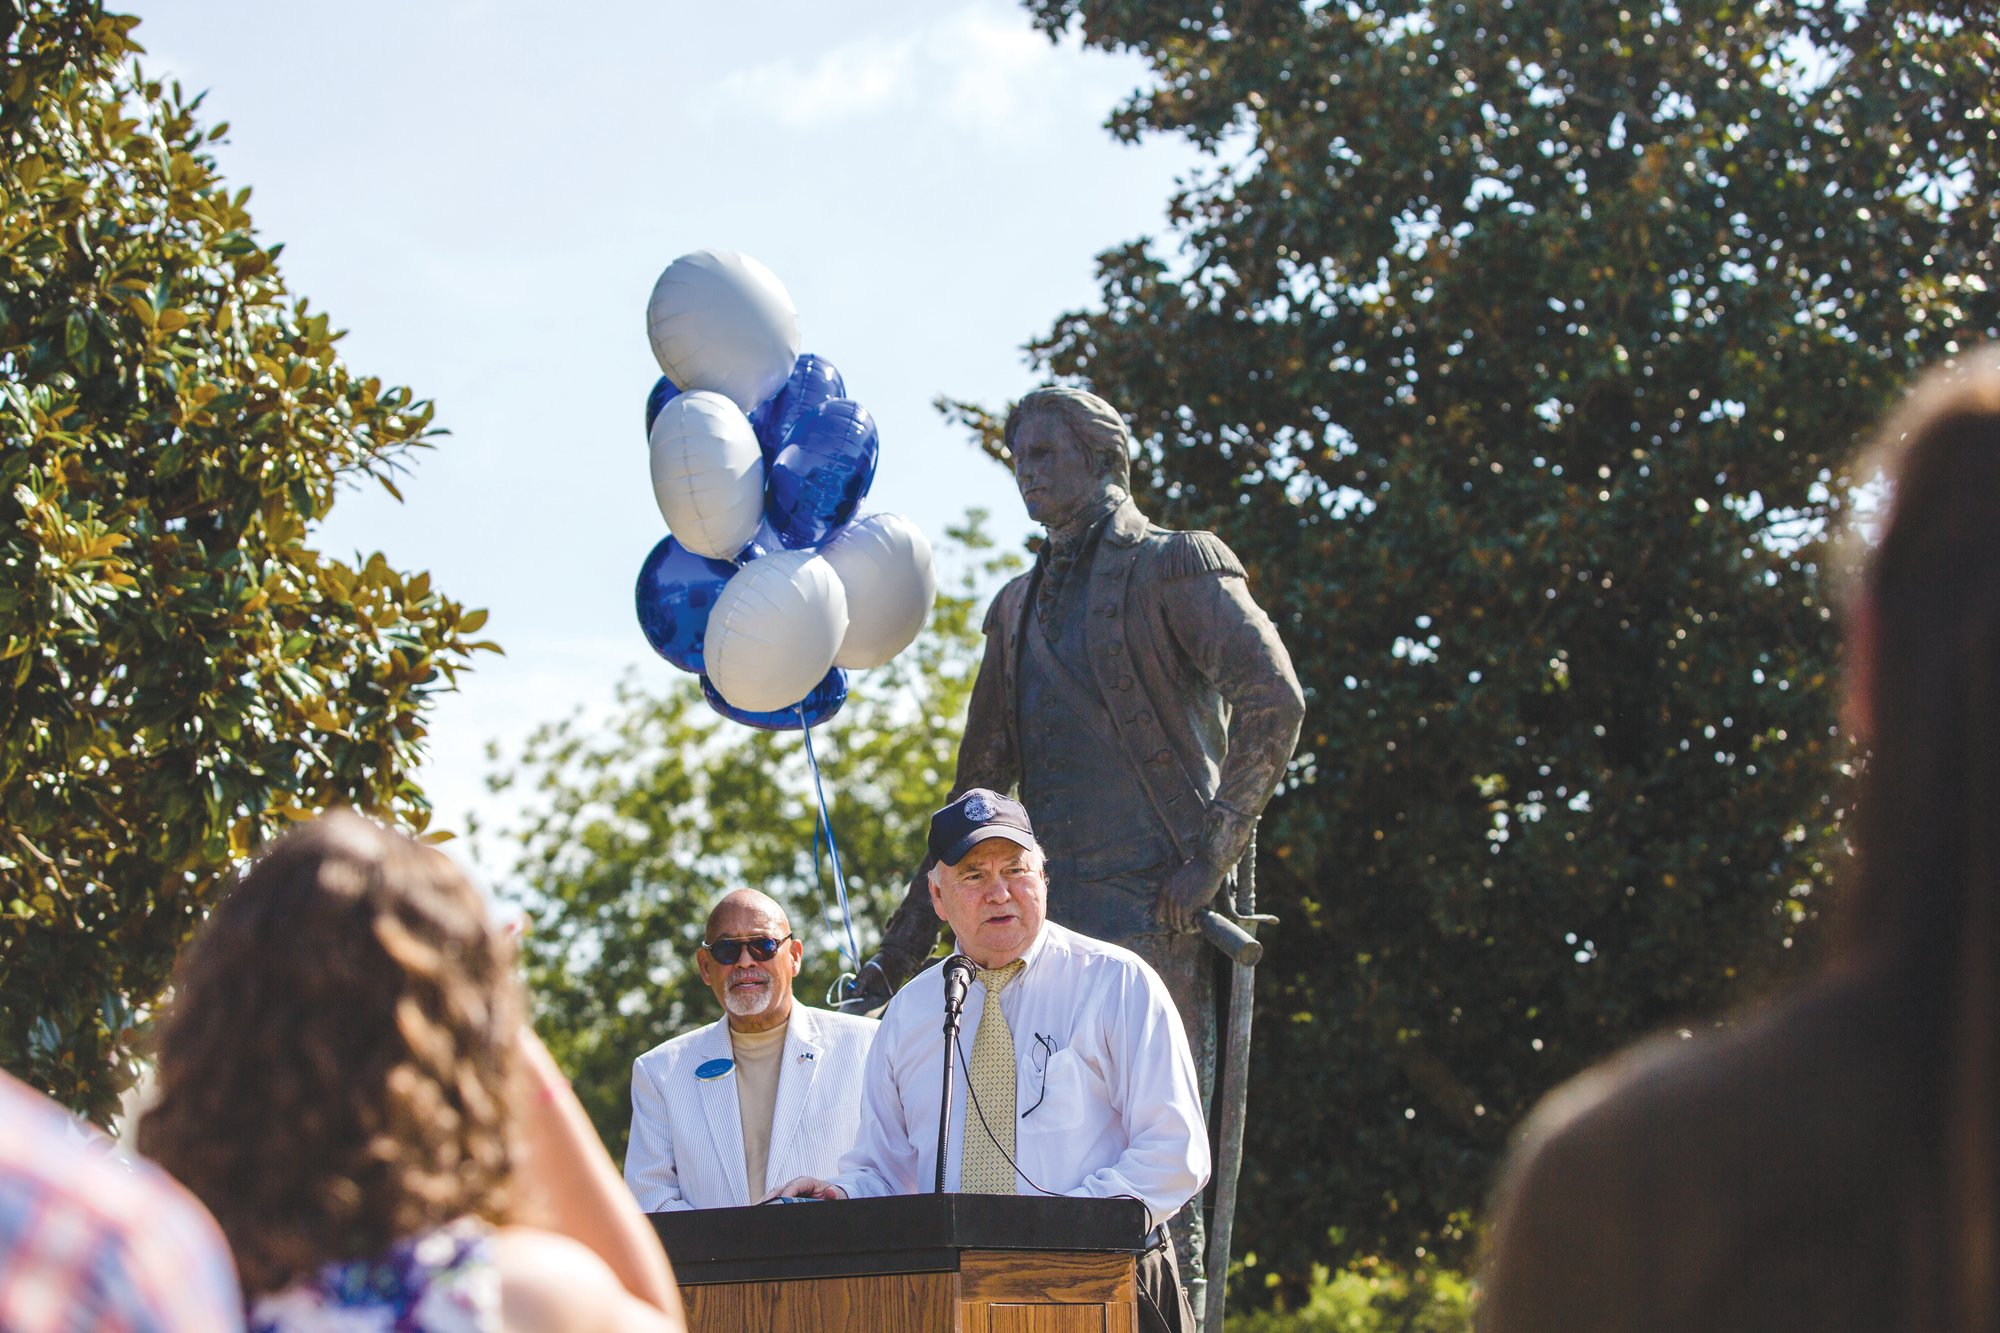 Sumter Item archivist and historian Sammy Way speaks about Sumter's namesake, Gen. Thomas Sumter, during a 285th birthday celebration for the Revolutionary War soldier on Wednesday at the Sumter County Courthouse. Jim McCain, chairman of Sumter County Council, looks on in front of a statue of Sumter.